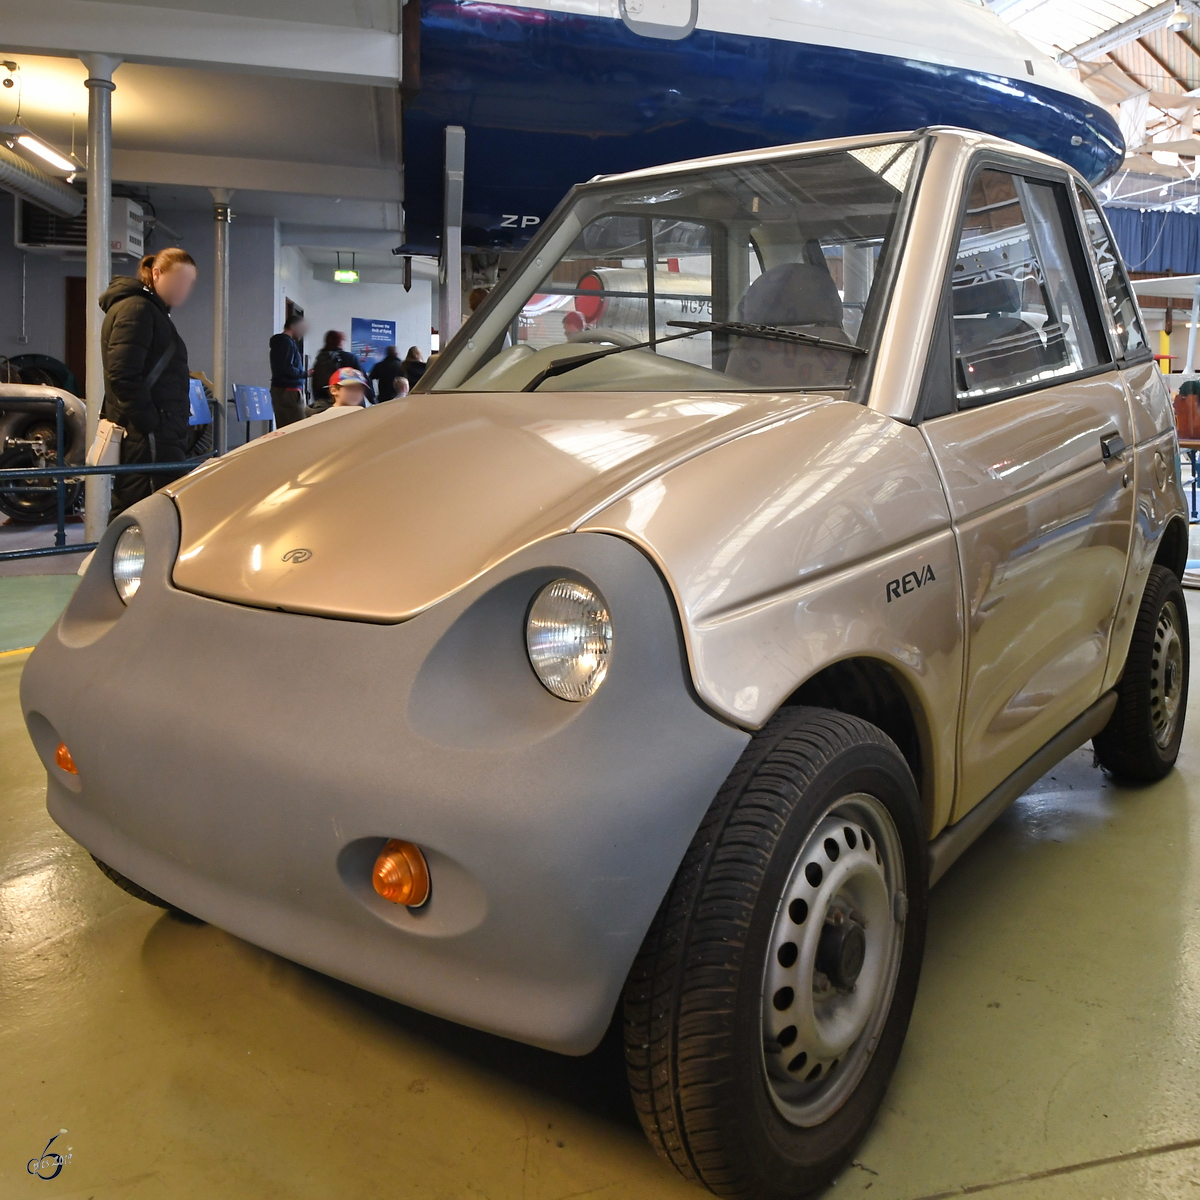 Das Elektro-Auto Reva G-Wiz Anfang Mai 2019 im Museum of Science and Industry in Manchester.